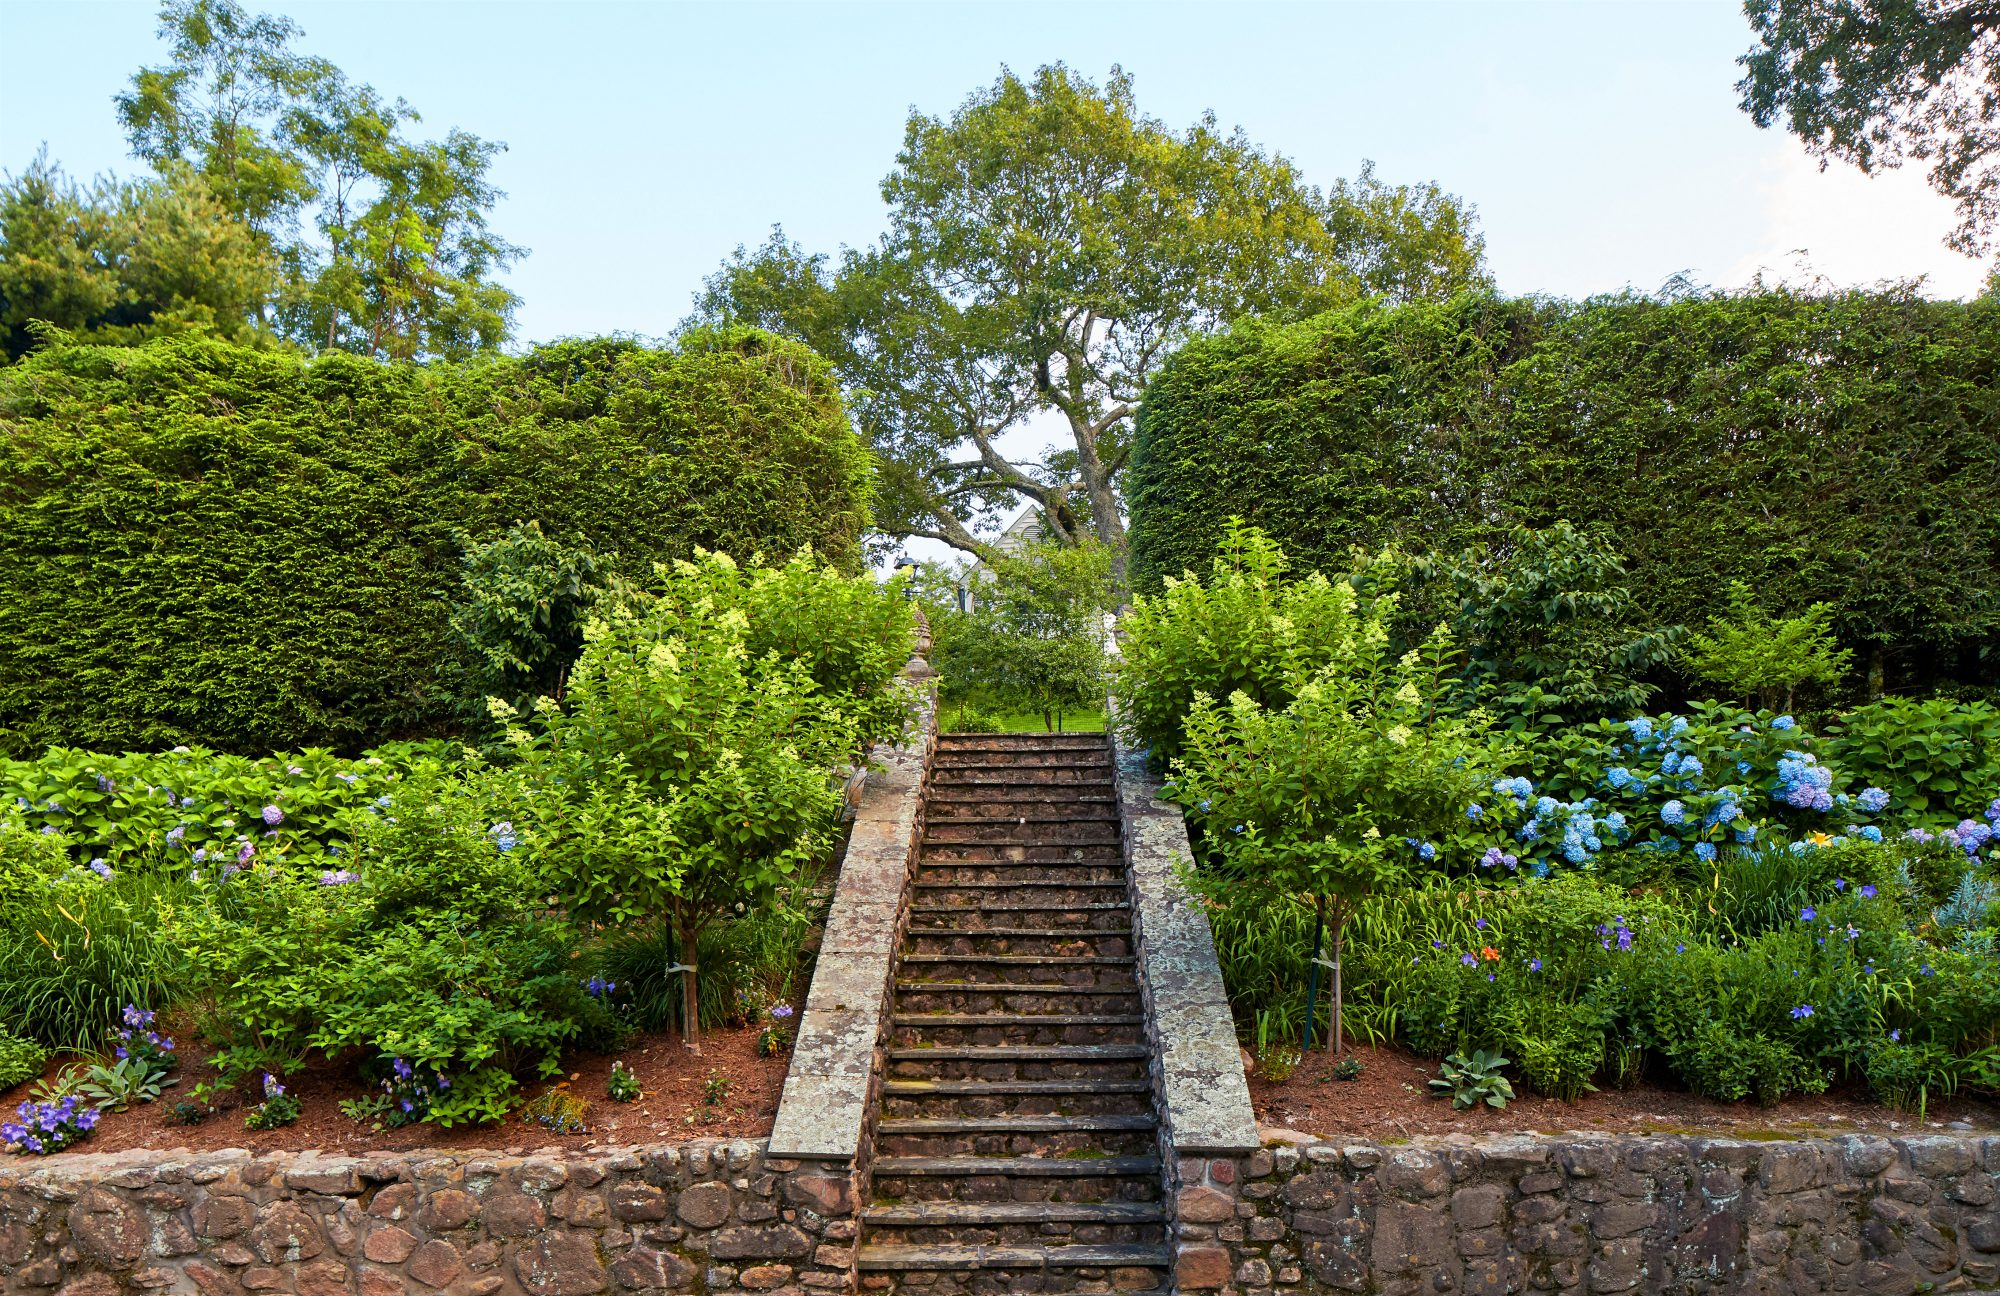 Brick Garden Stairs with Blooming Hydrangeas at 1929 Mountain House in North Carolina